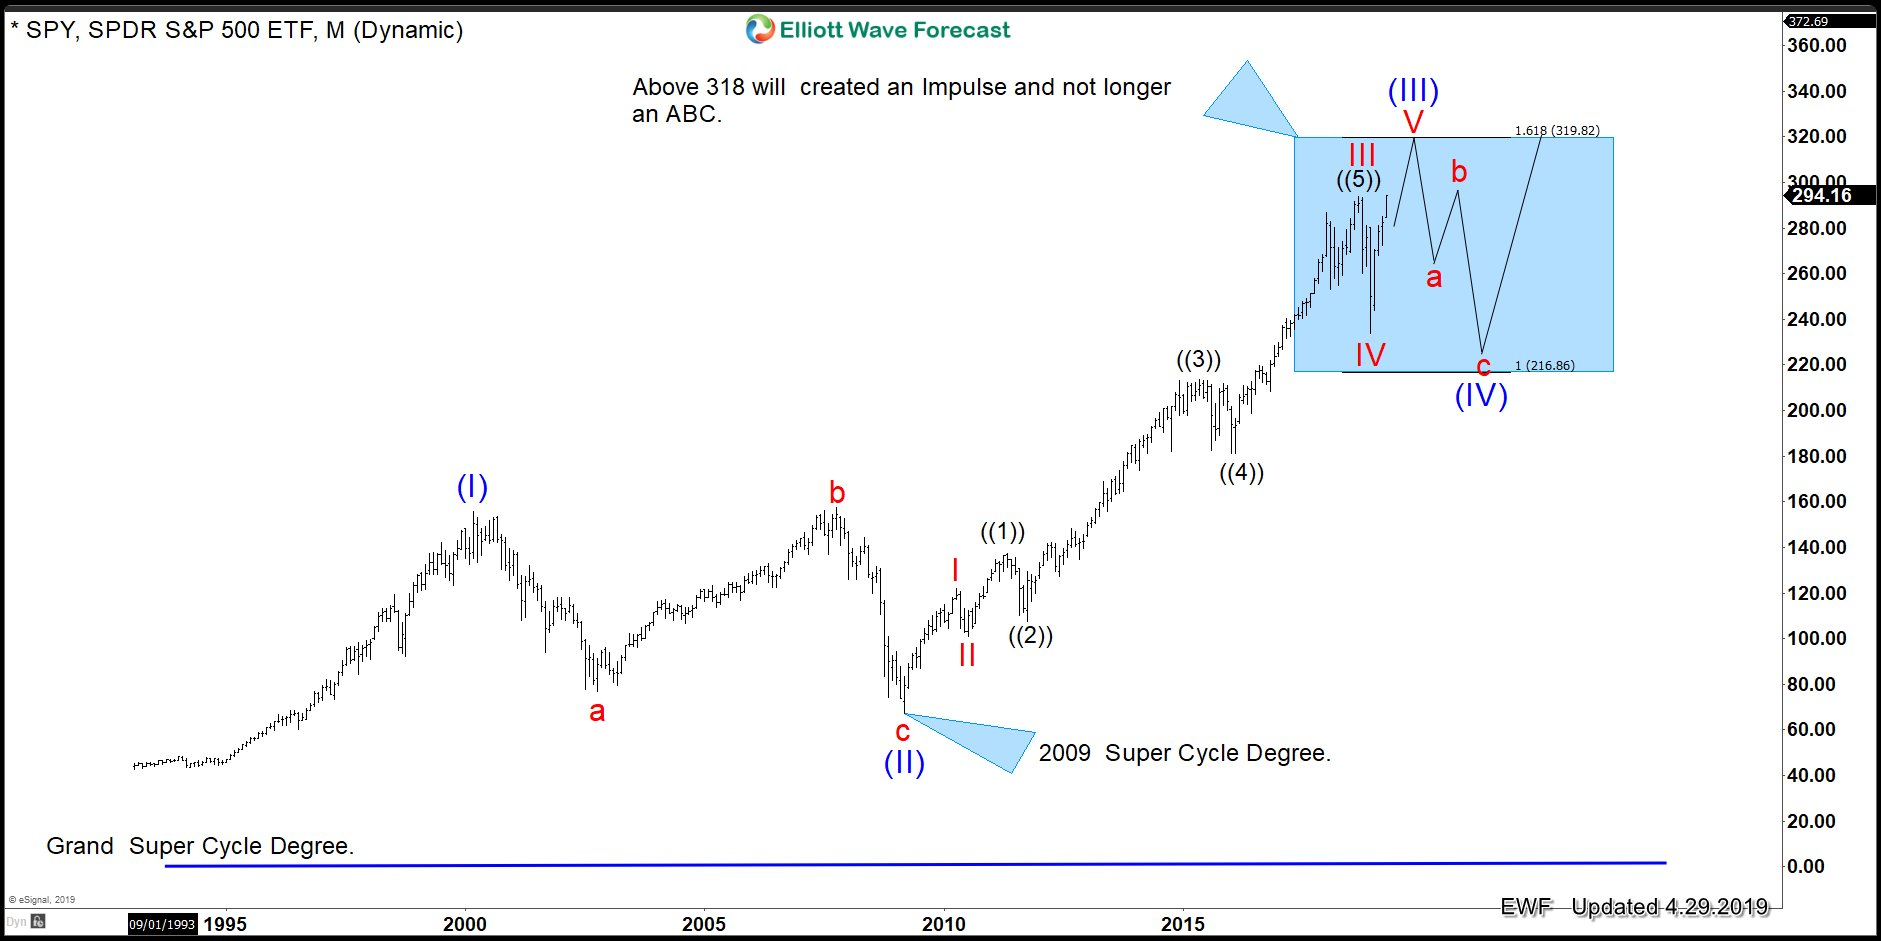 Elliott Wave Theory: SPY What does $318.00 mean